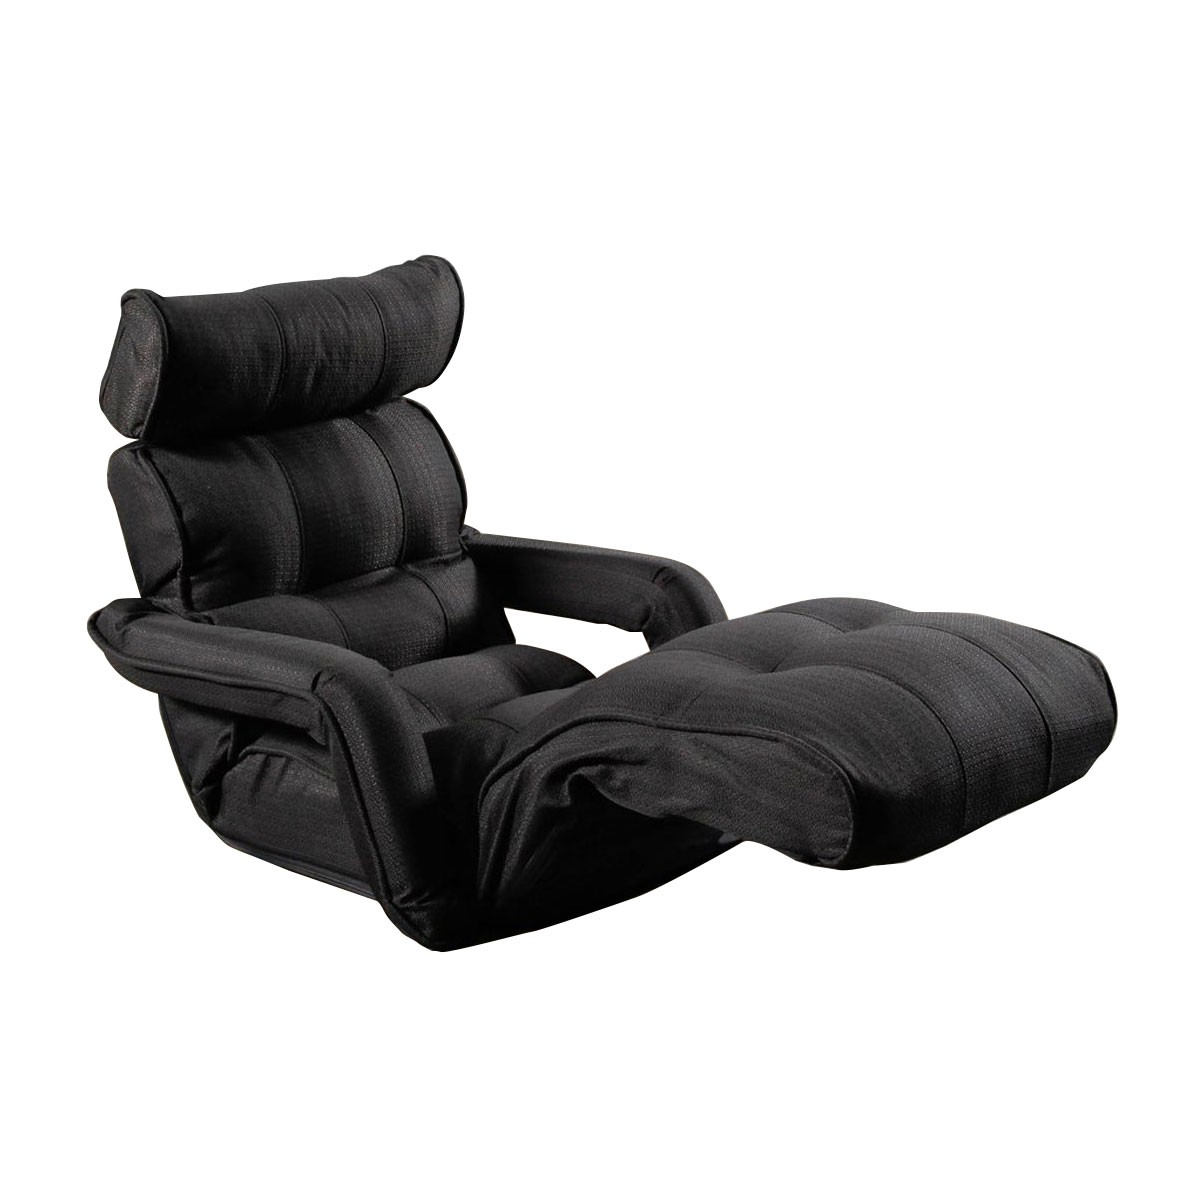 Black Grey Soft Linen Fabric Folding Floor Sofa Recliner (K16RS01-BG)